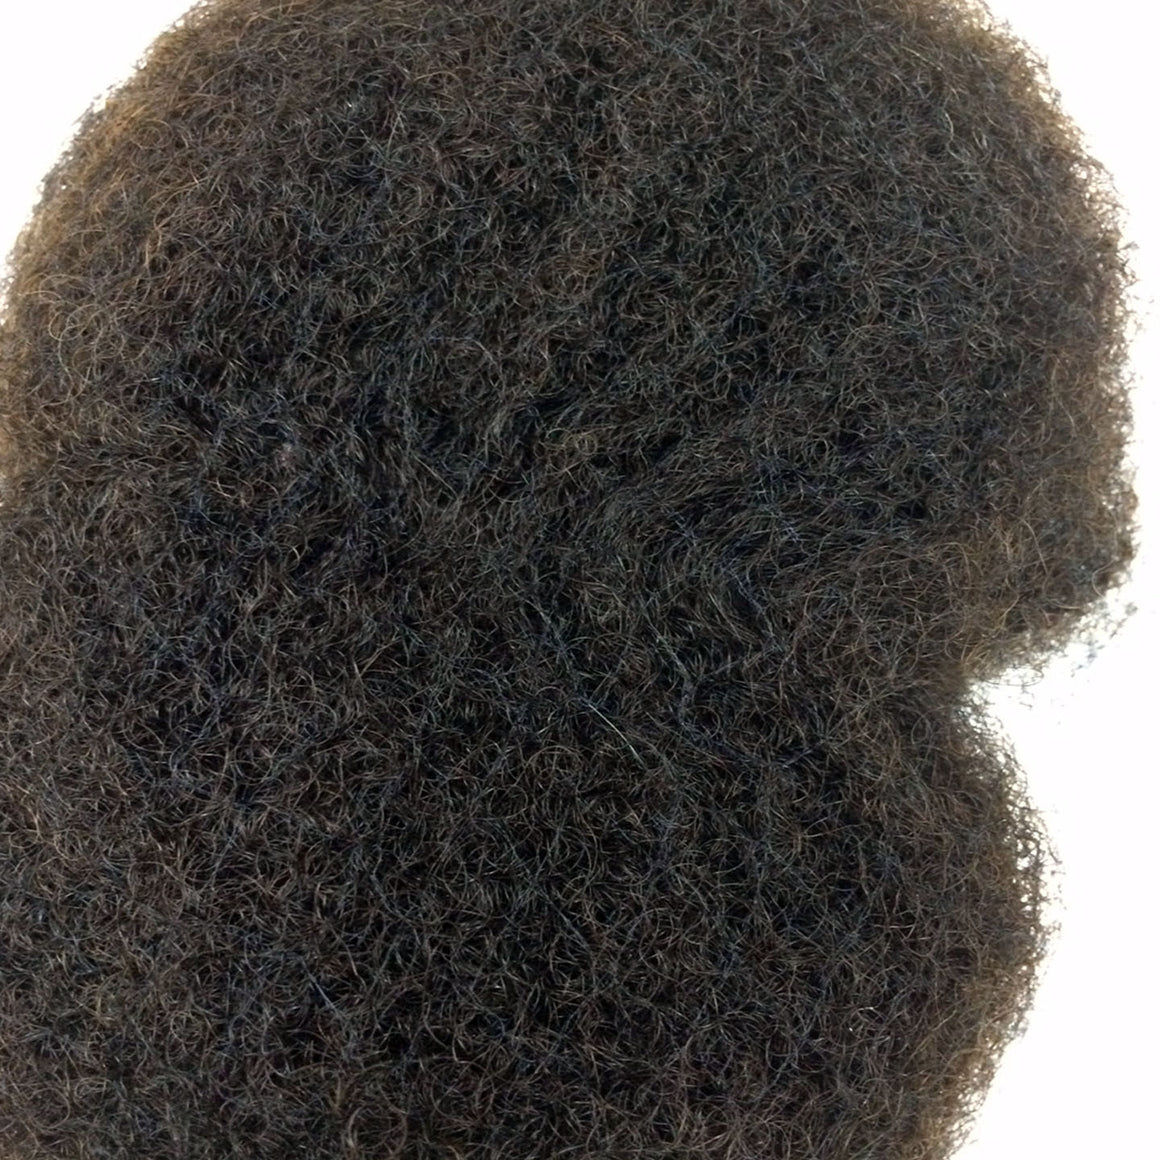 "Afro Kinky Human Hair for Locs, Twists and Dread Hair 12"" - Hairesthetic"